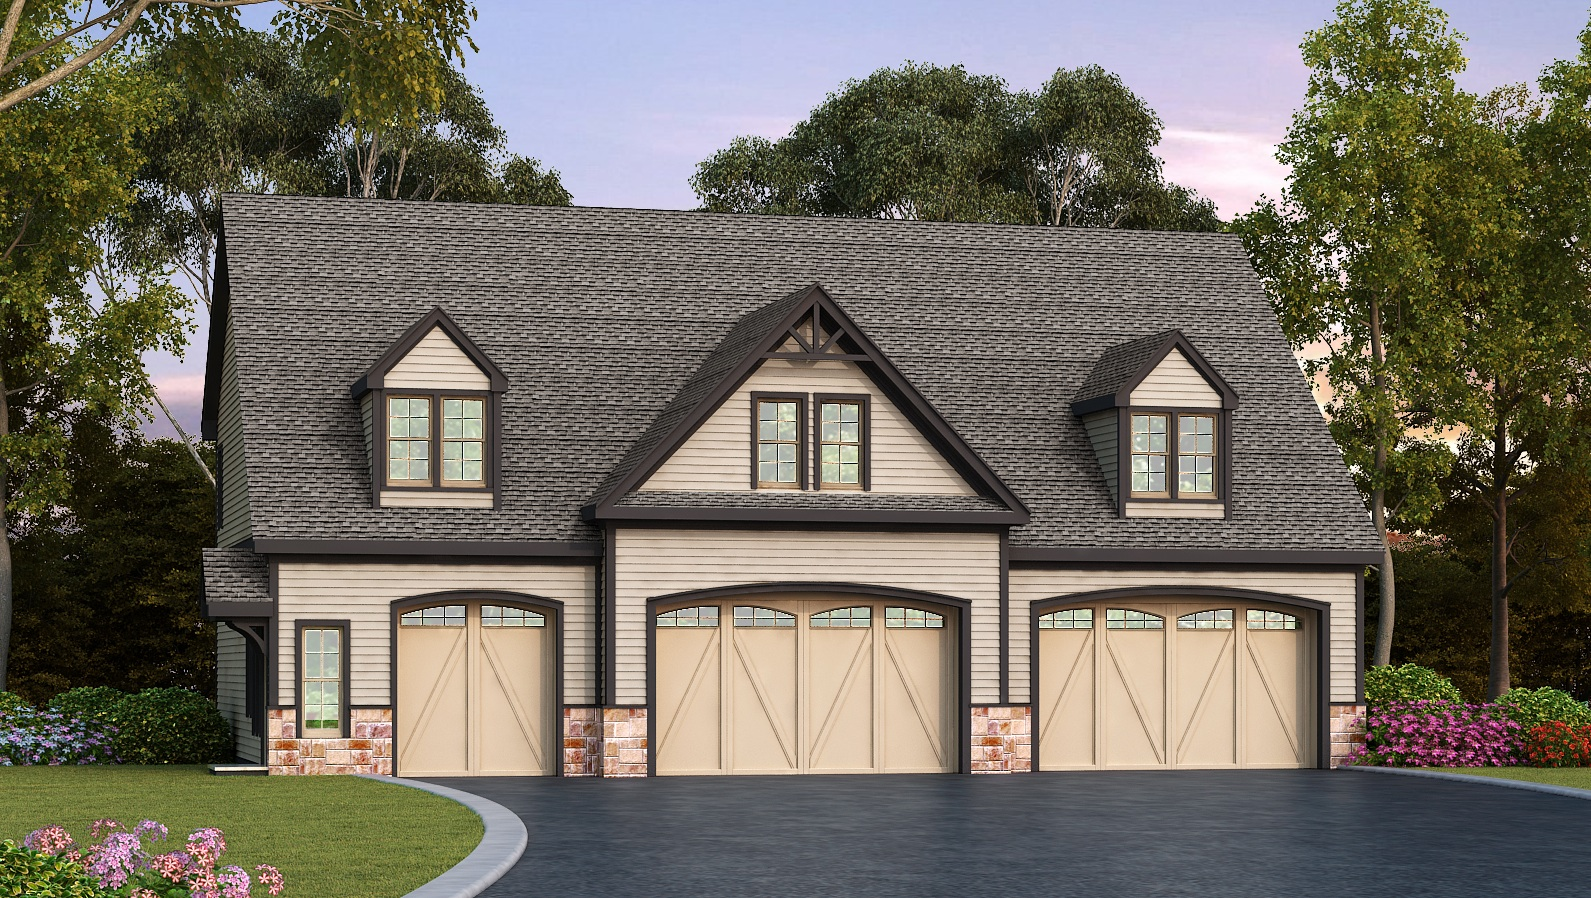 Residential 5 car garage plan 29870rl 2nd floor master for 5 car garage